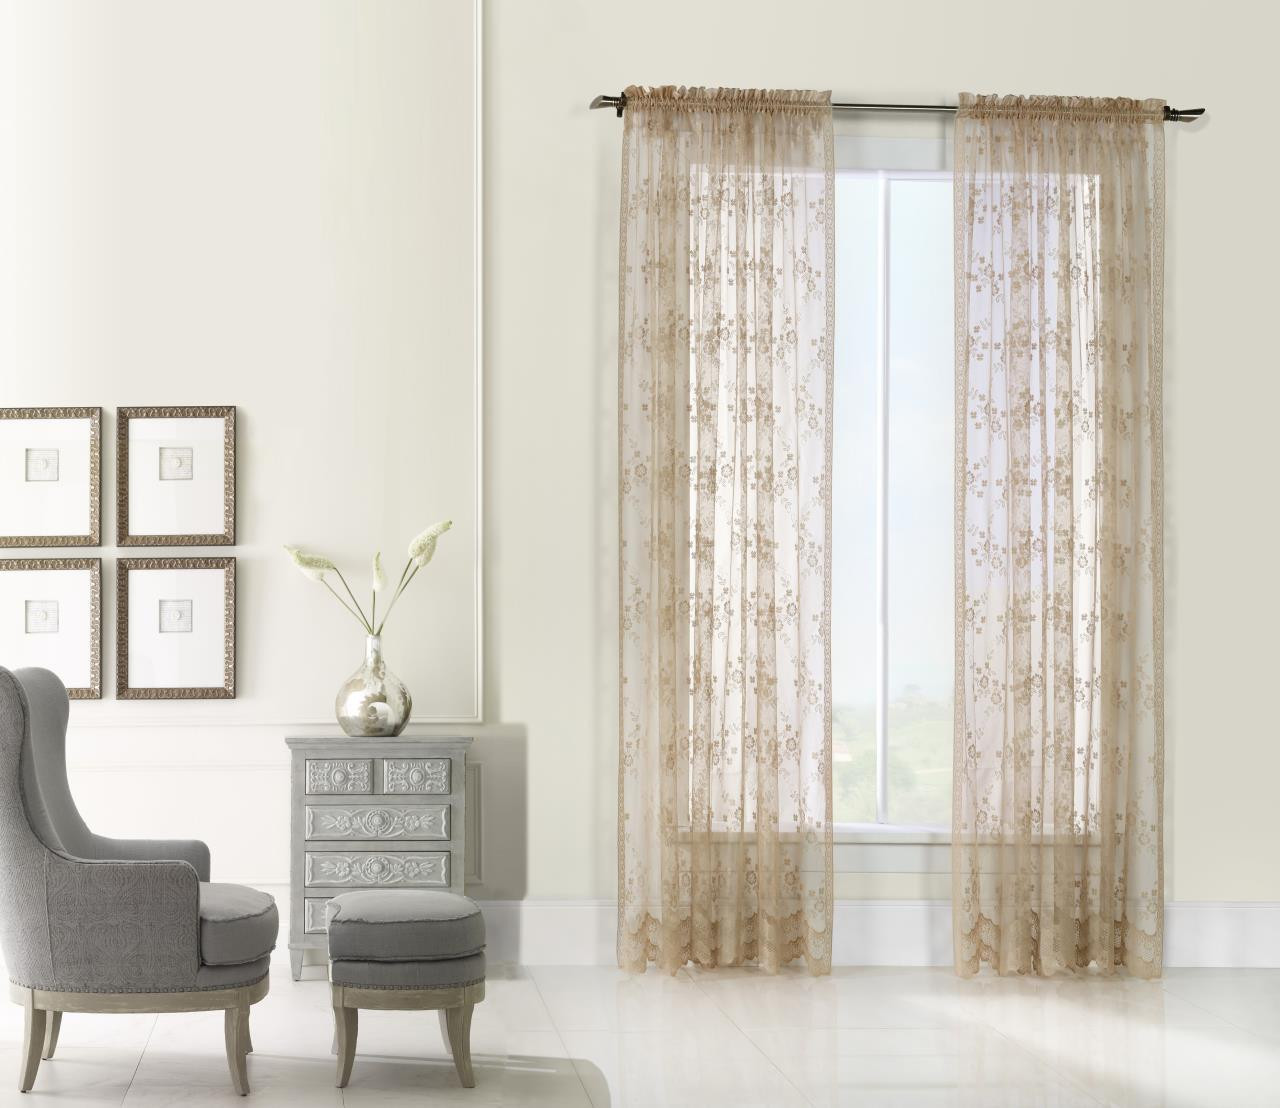 Mona Lisa Lace Sheer Curtain Collection -